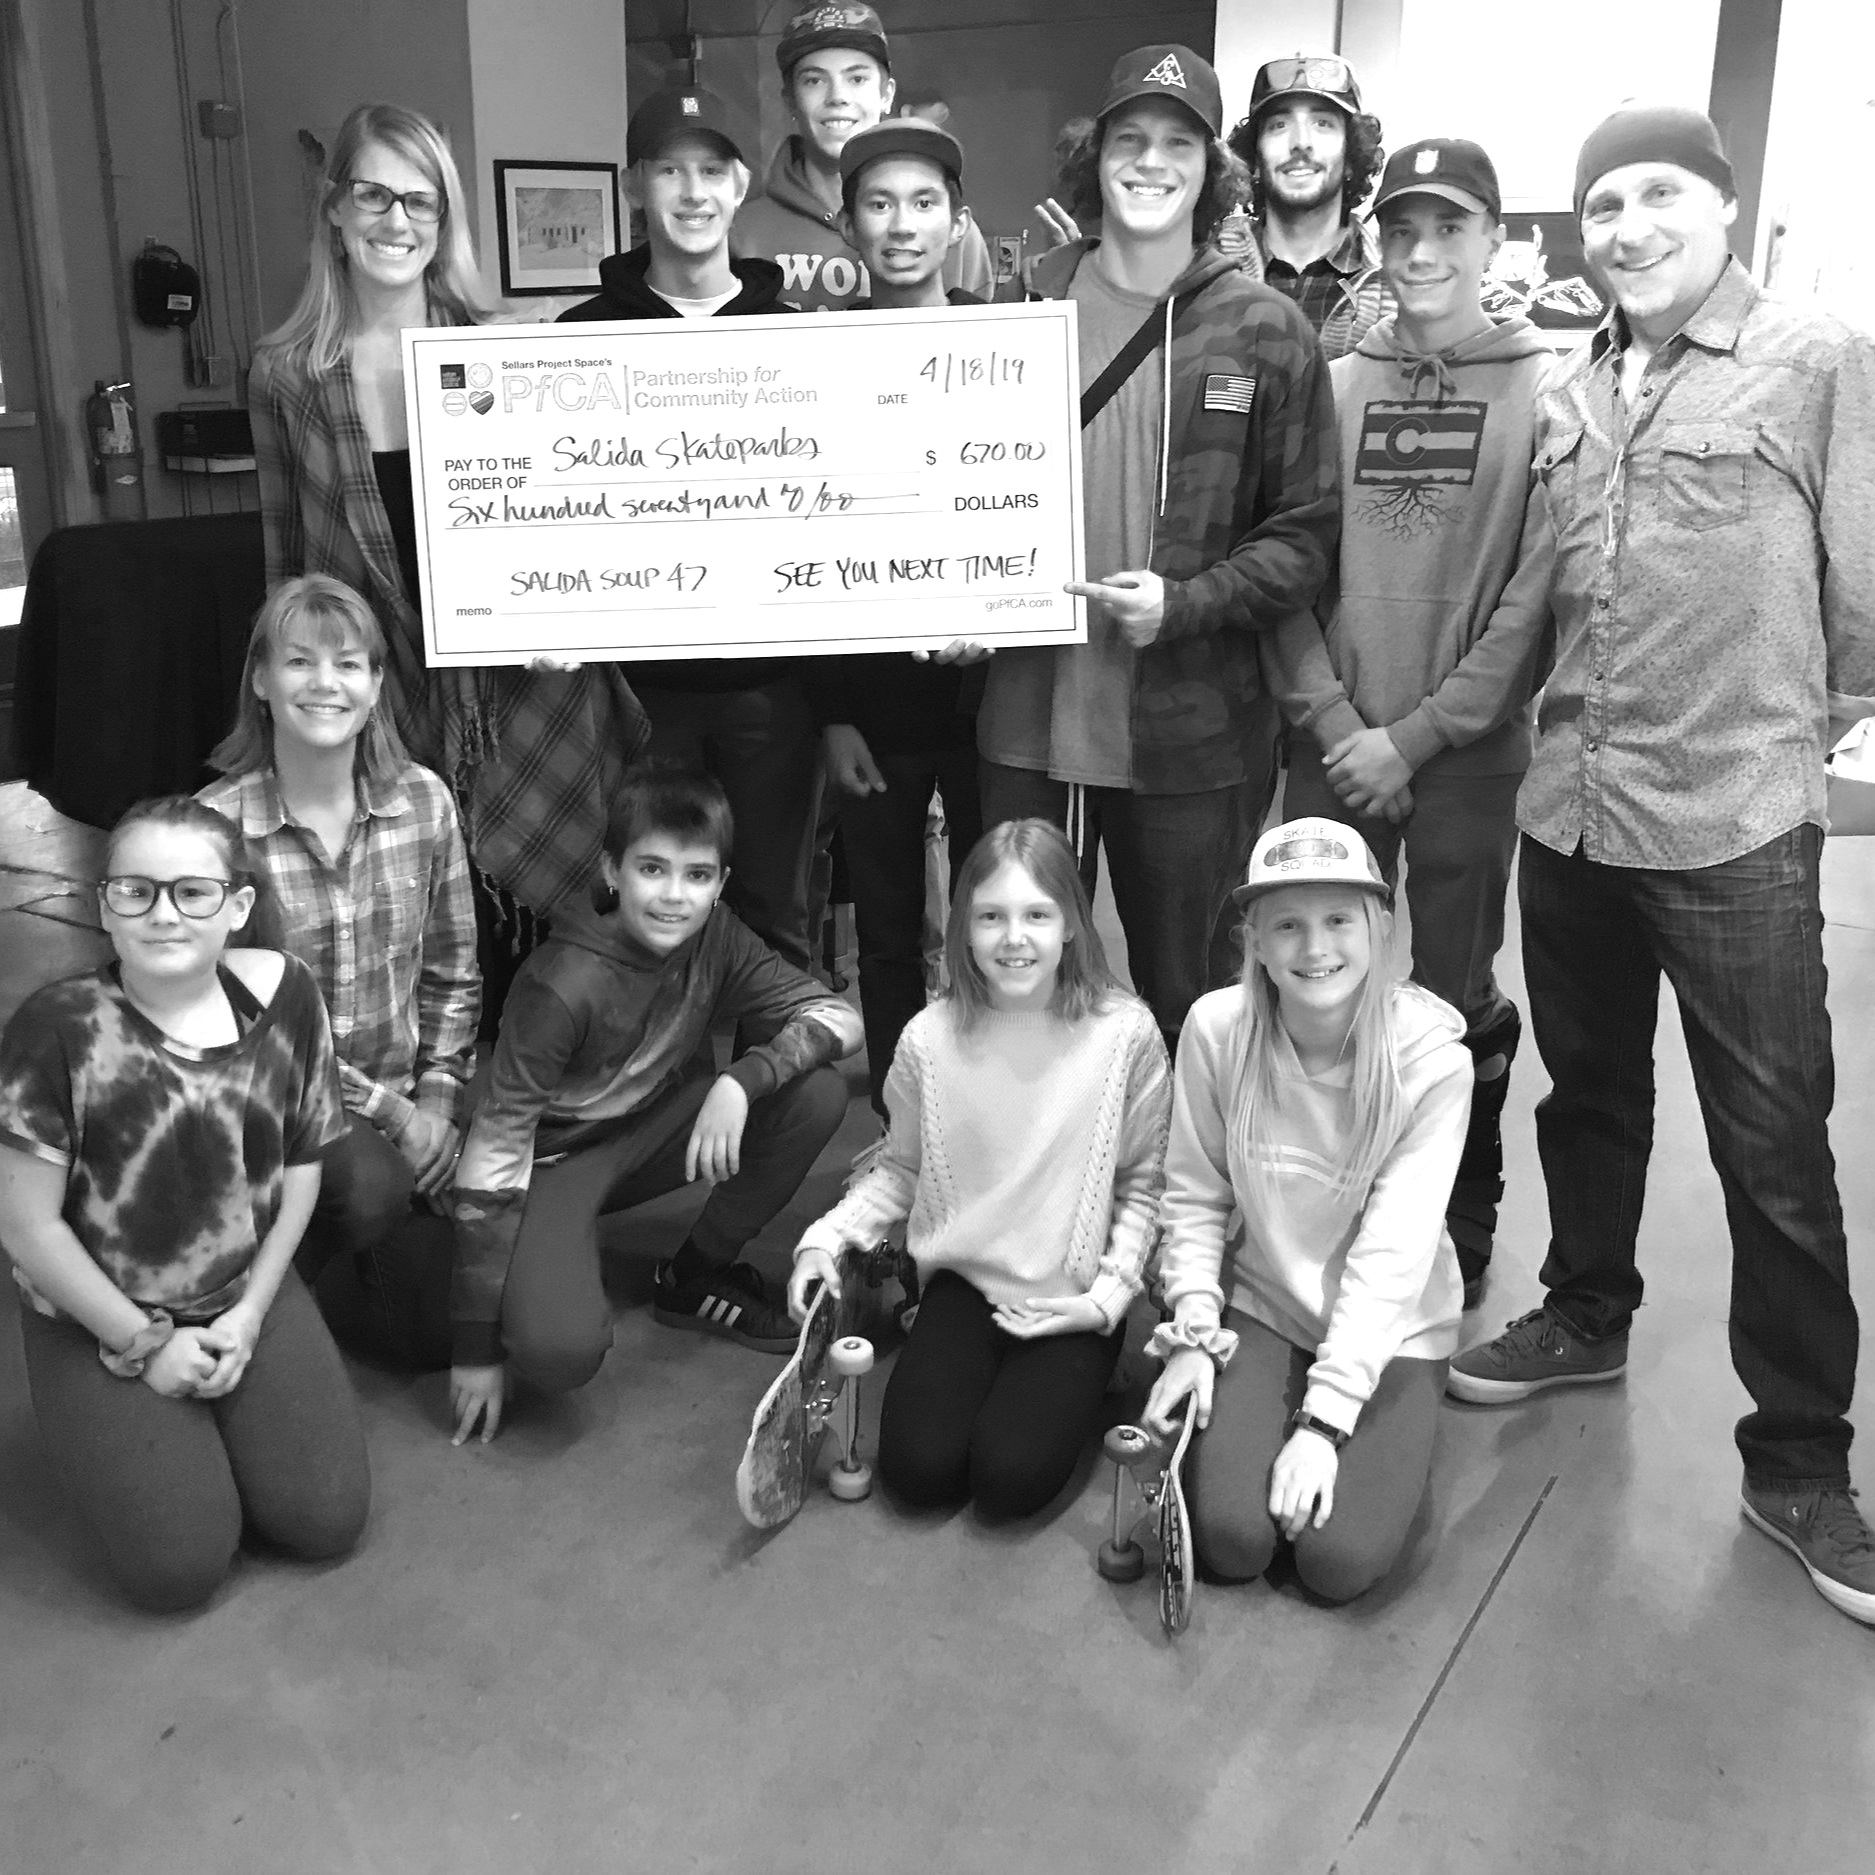 The Friends of Salida Skateparks crew poses with the Big Check after their Salida Soup 47 win.